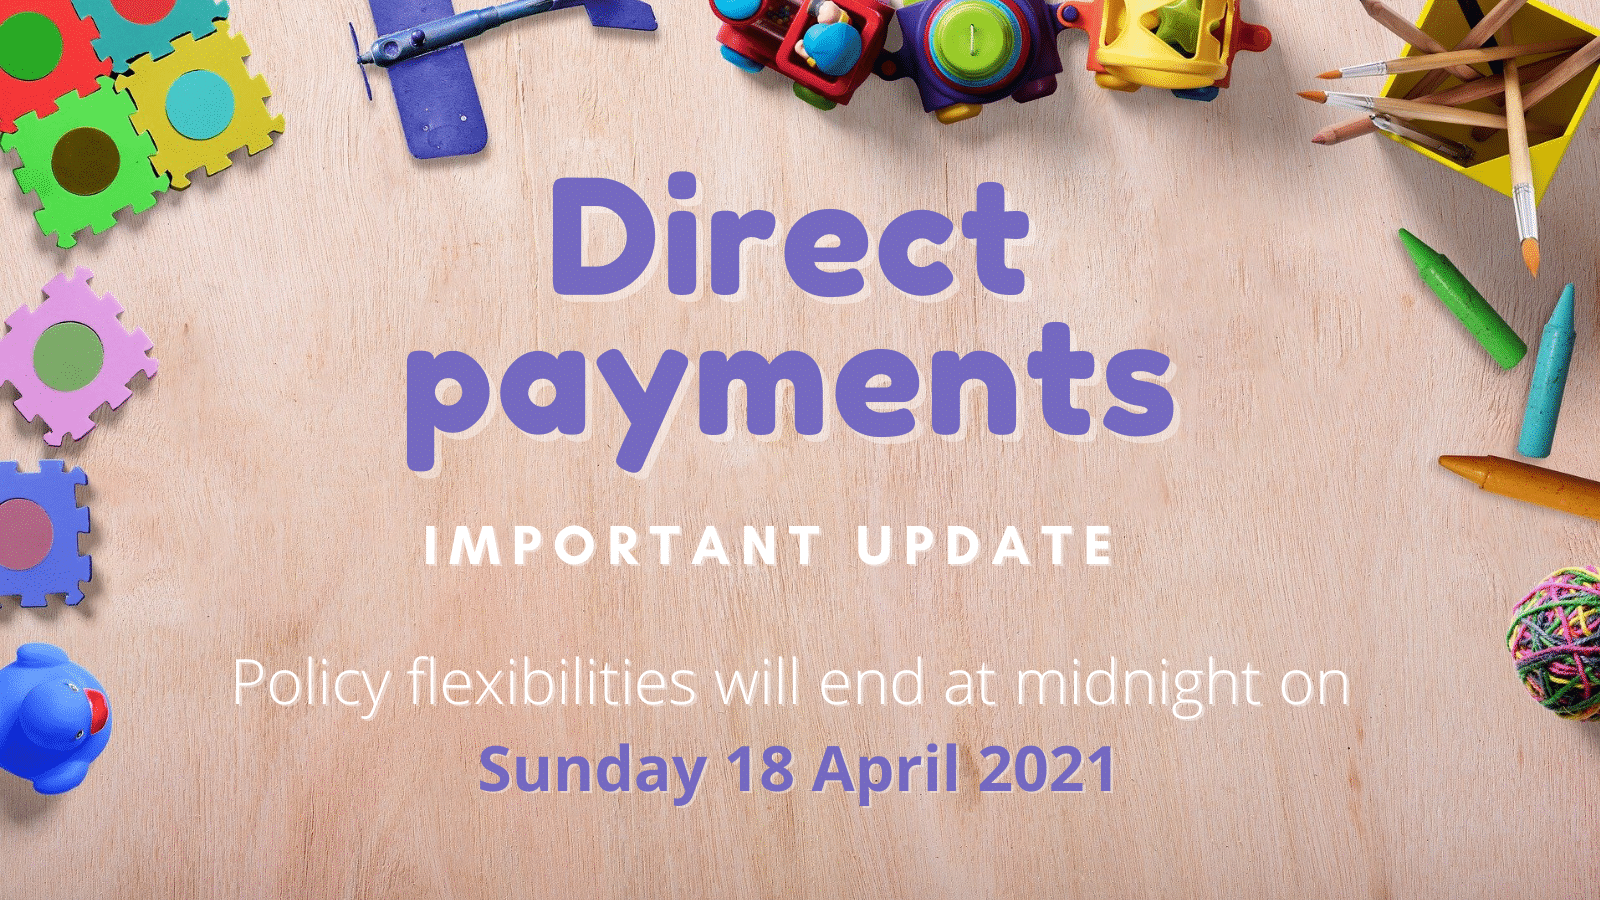 a graphic announcing updates to the Direct Payment policy